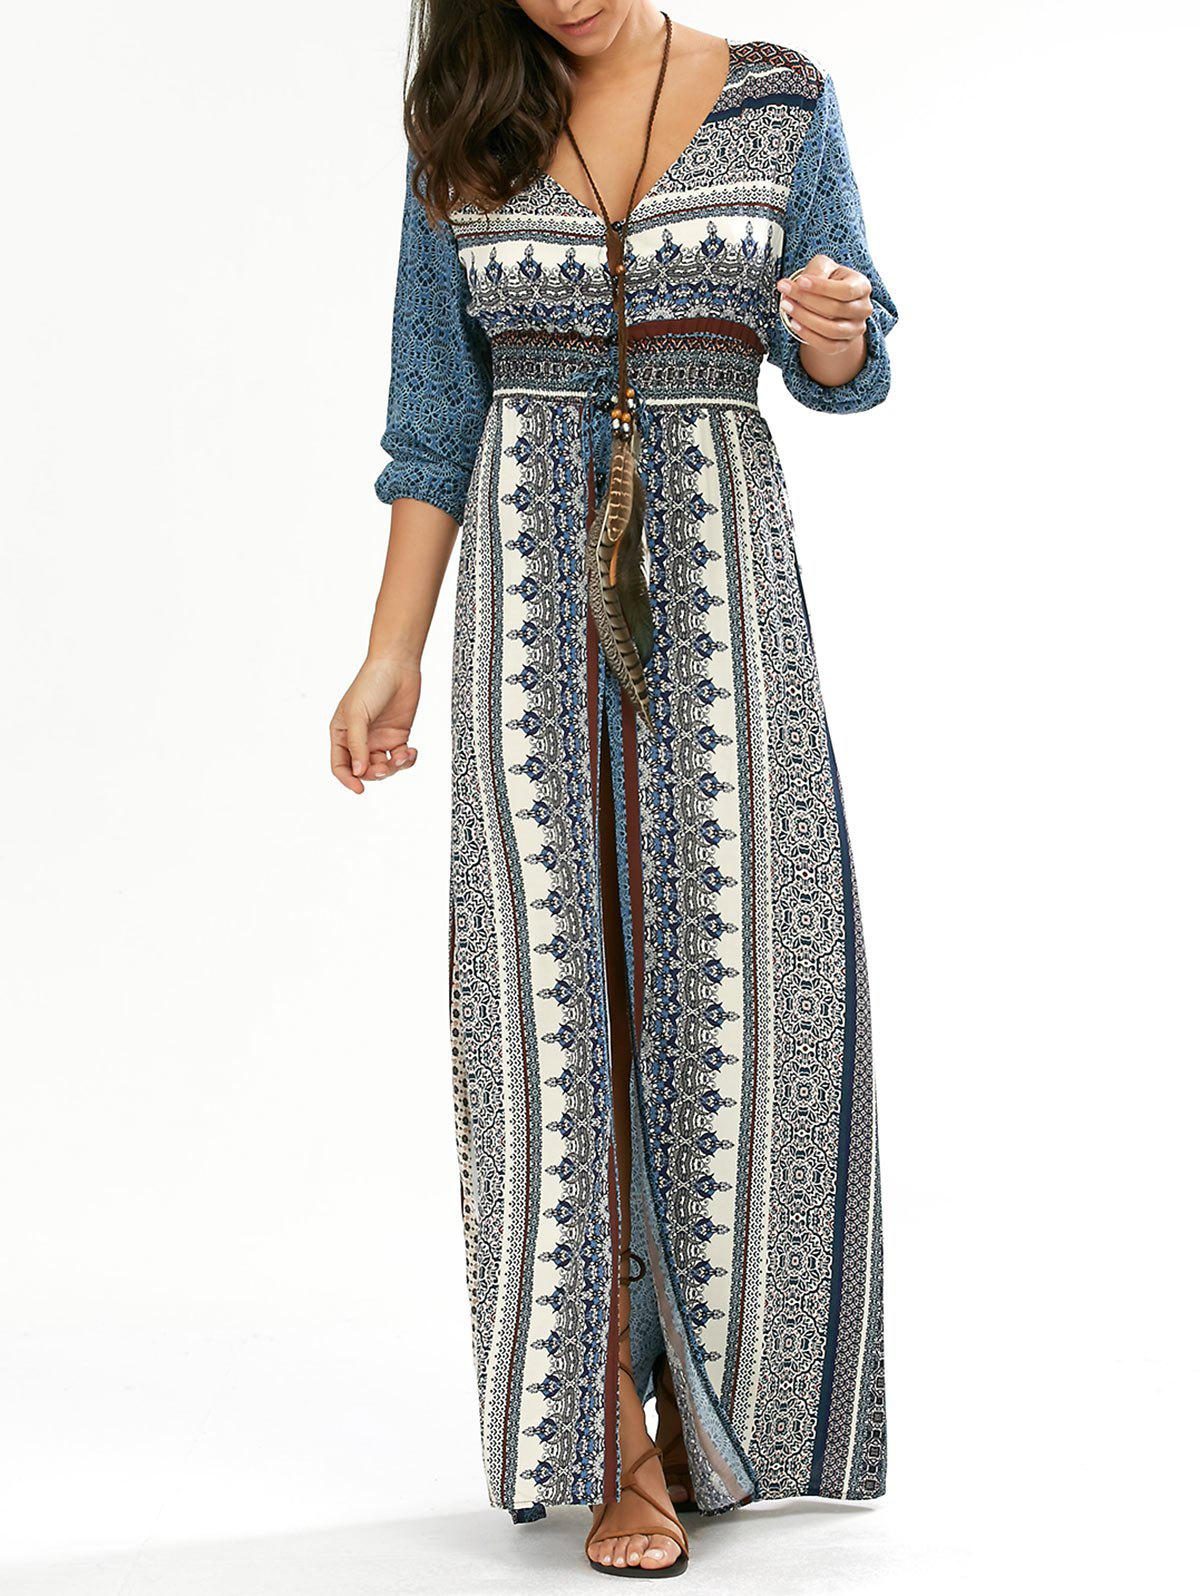 Empire Waist Button Down Flowy Beach Bohemian Maxi Dress - BLUE XL